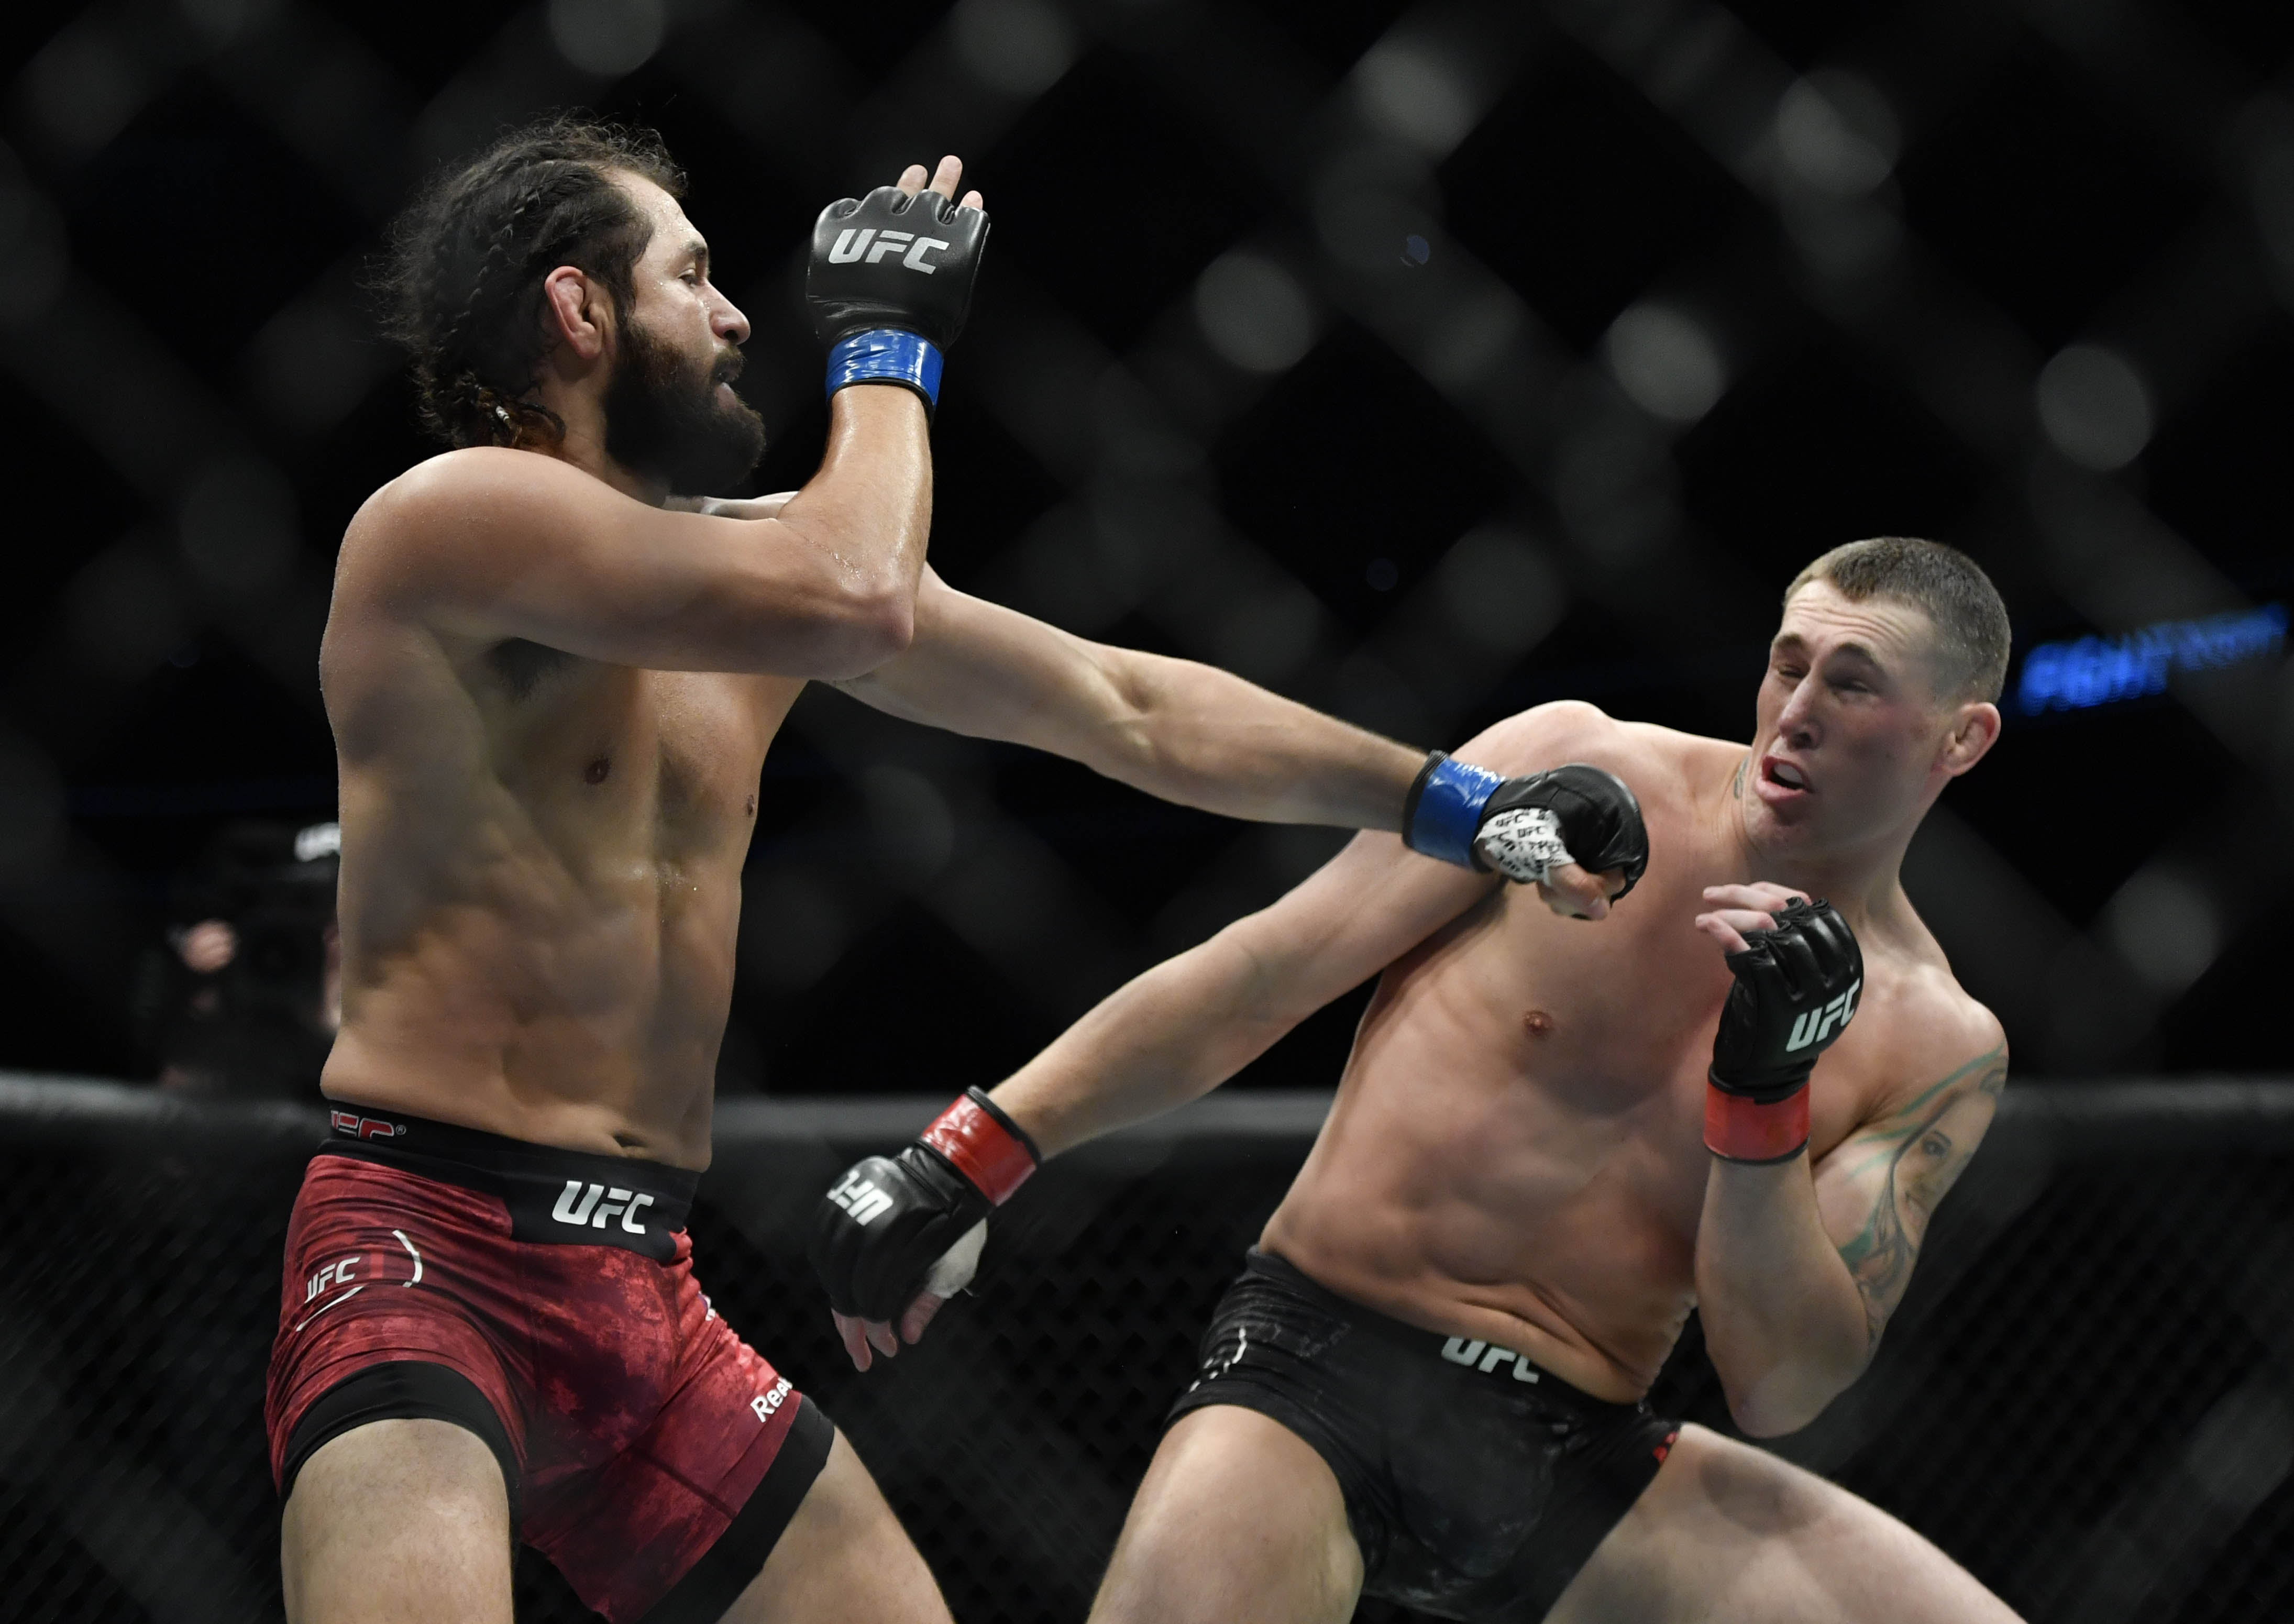 Watch: Jorge Masvidal knocks Darren Till out cold, gets into post-event fight